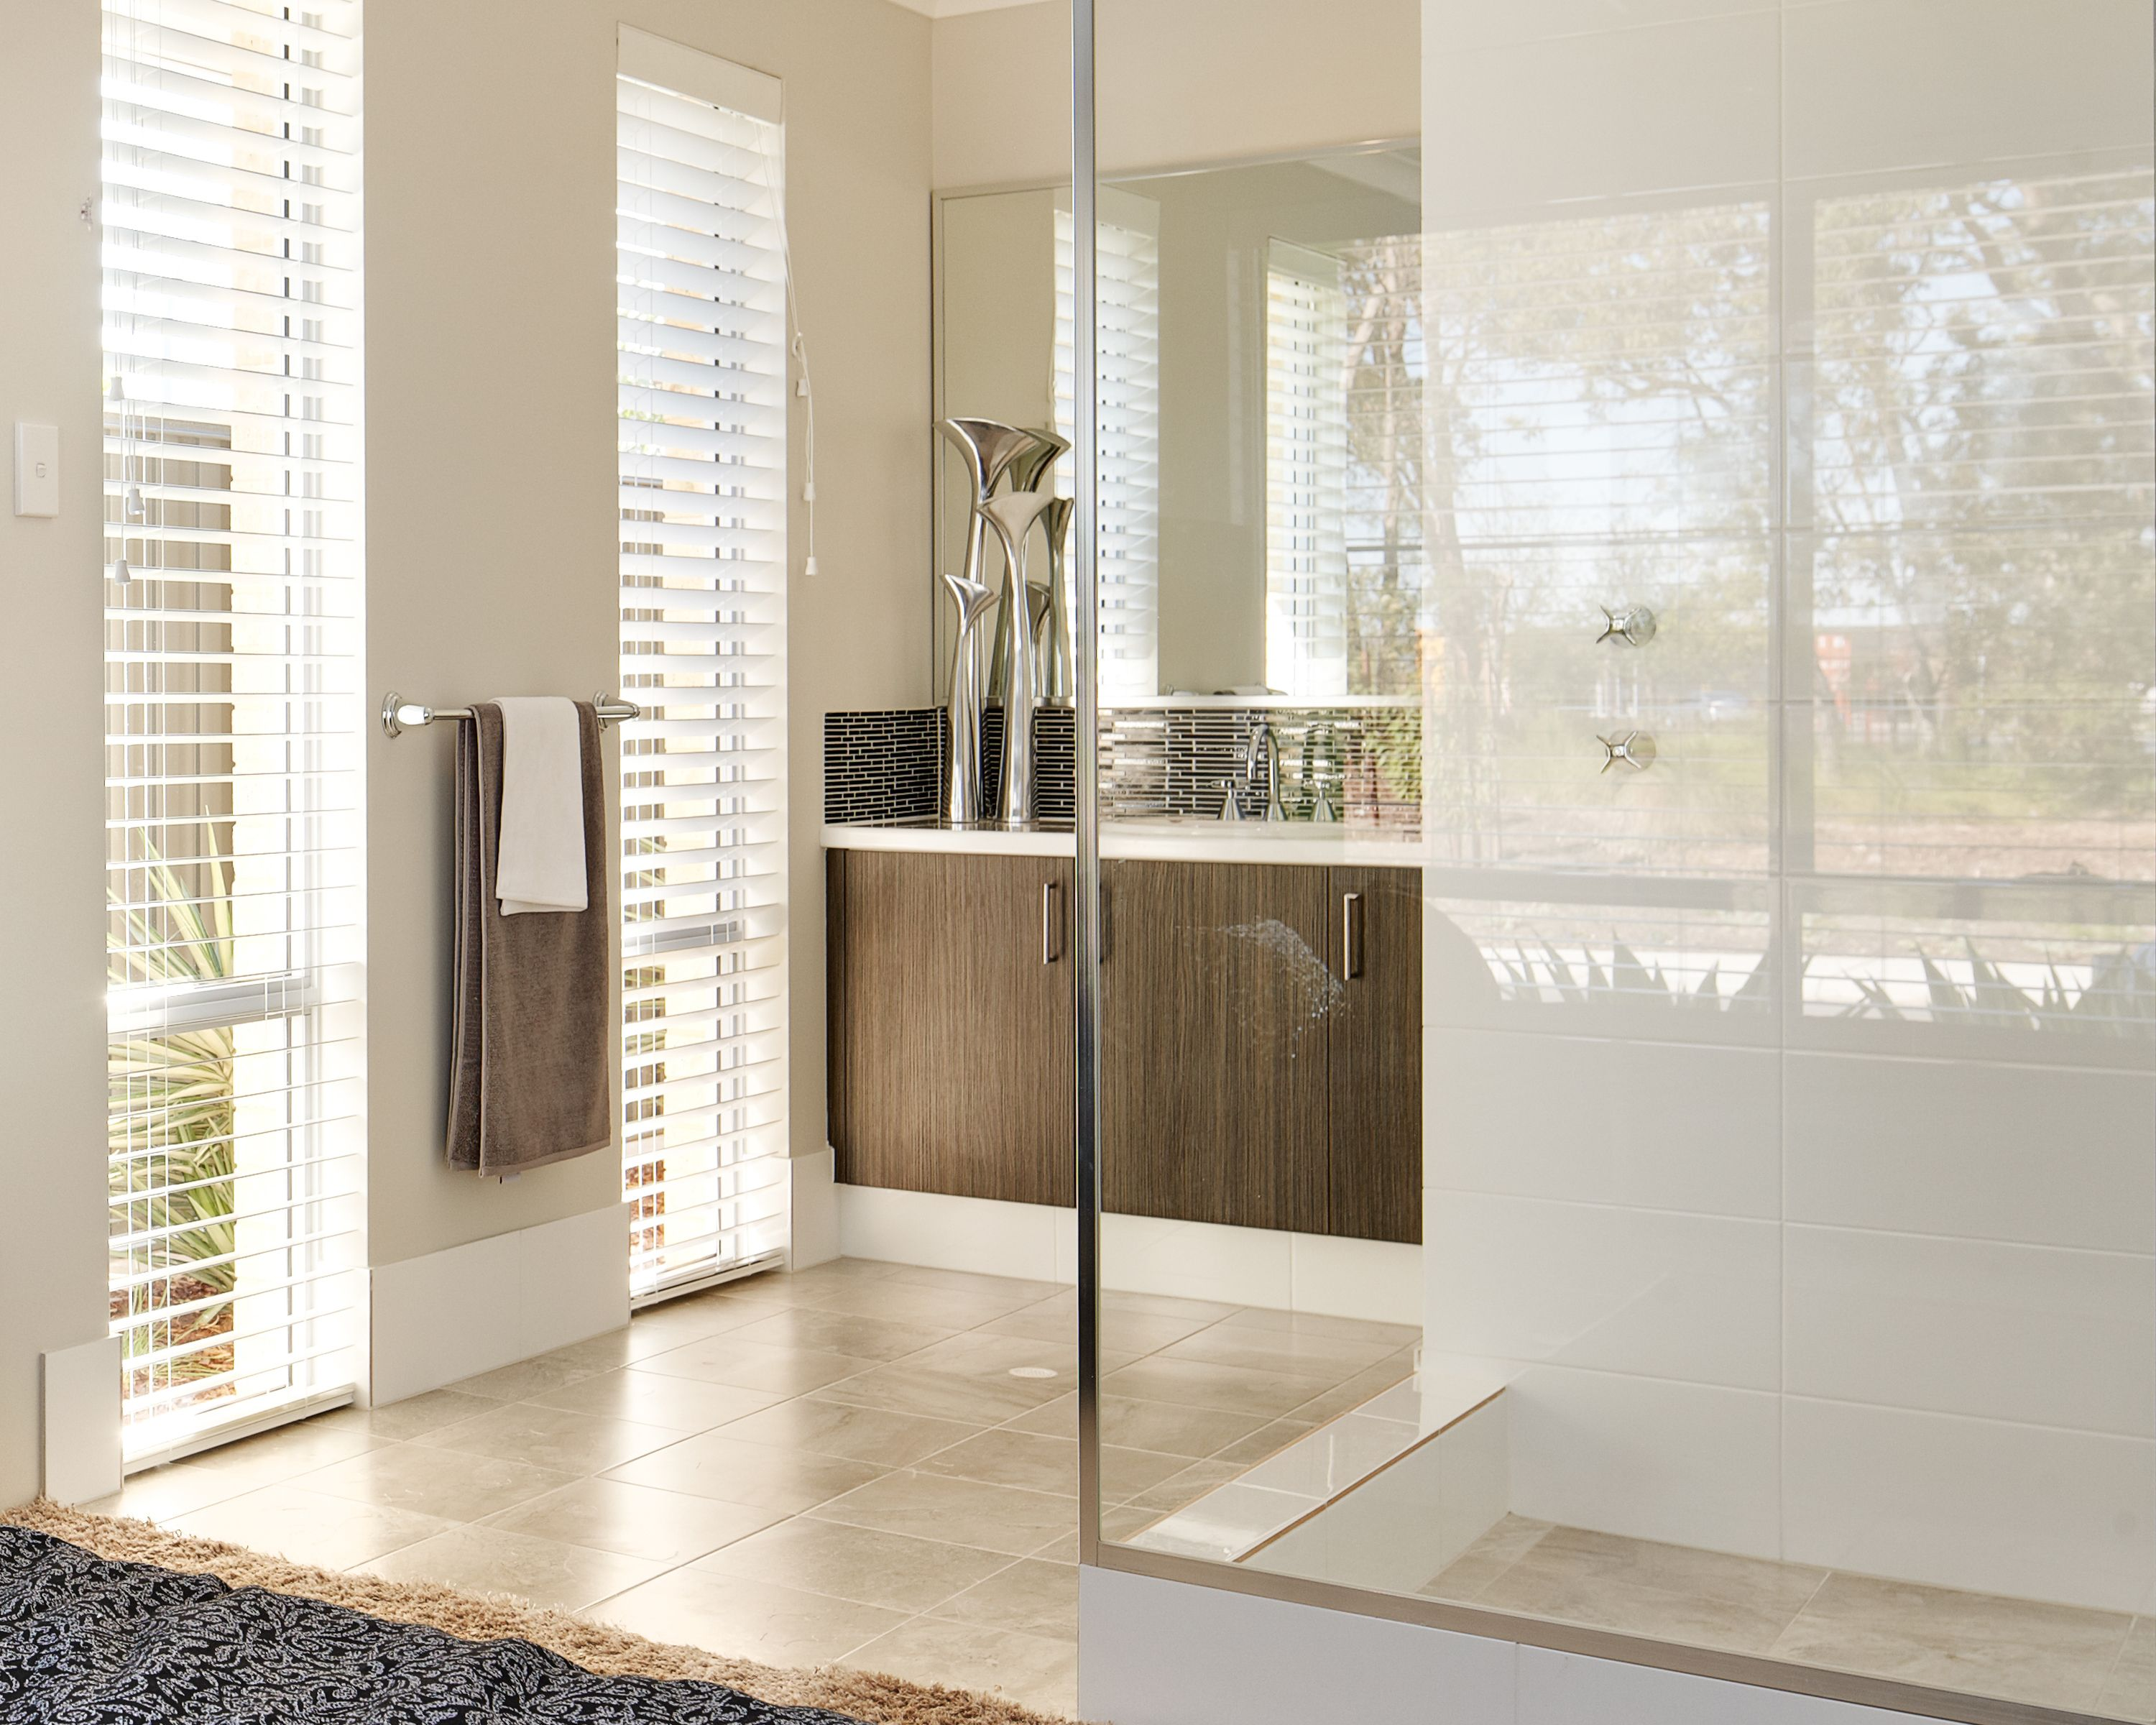 Diamond Vibe Cabinets Laminex Domain Nuance Cabinet Doors Offset By Laminex Polar White